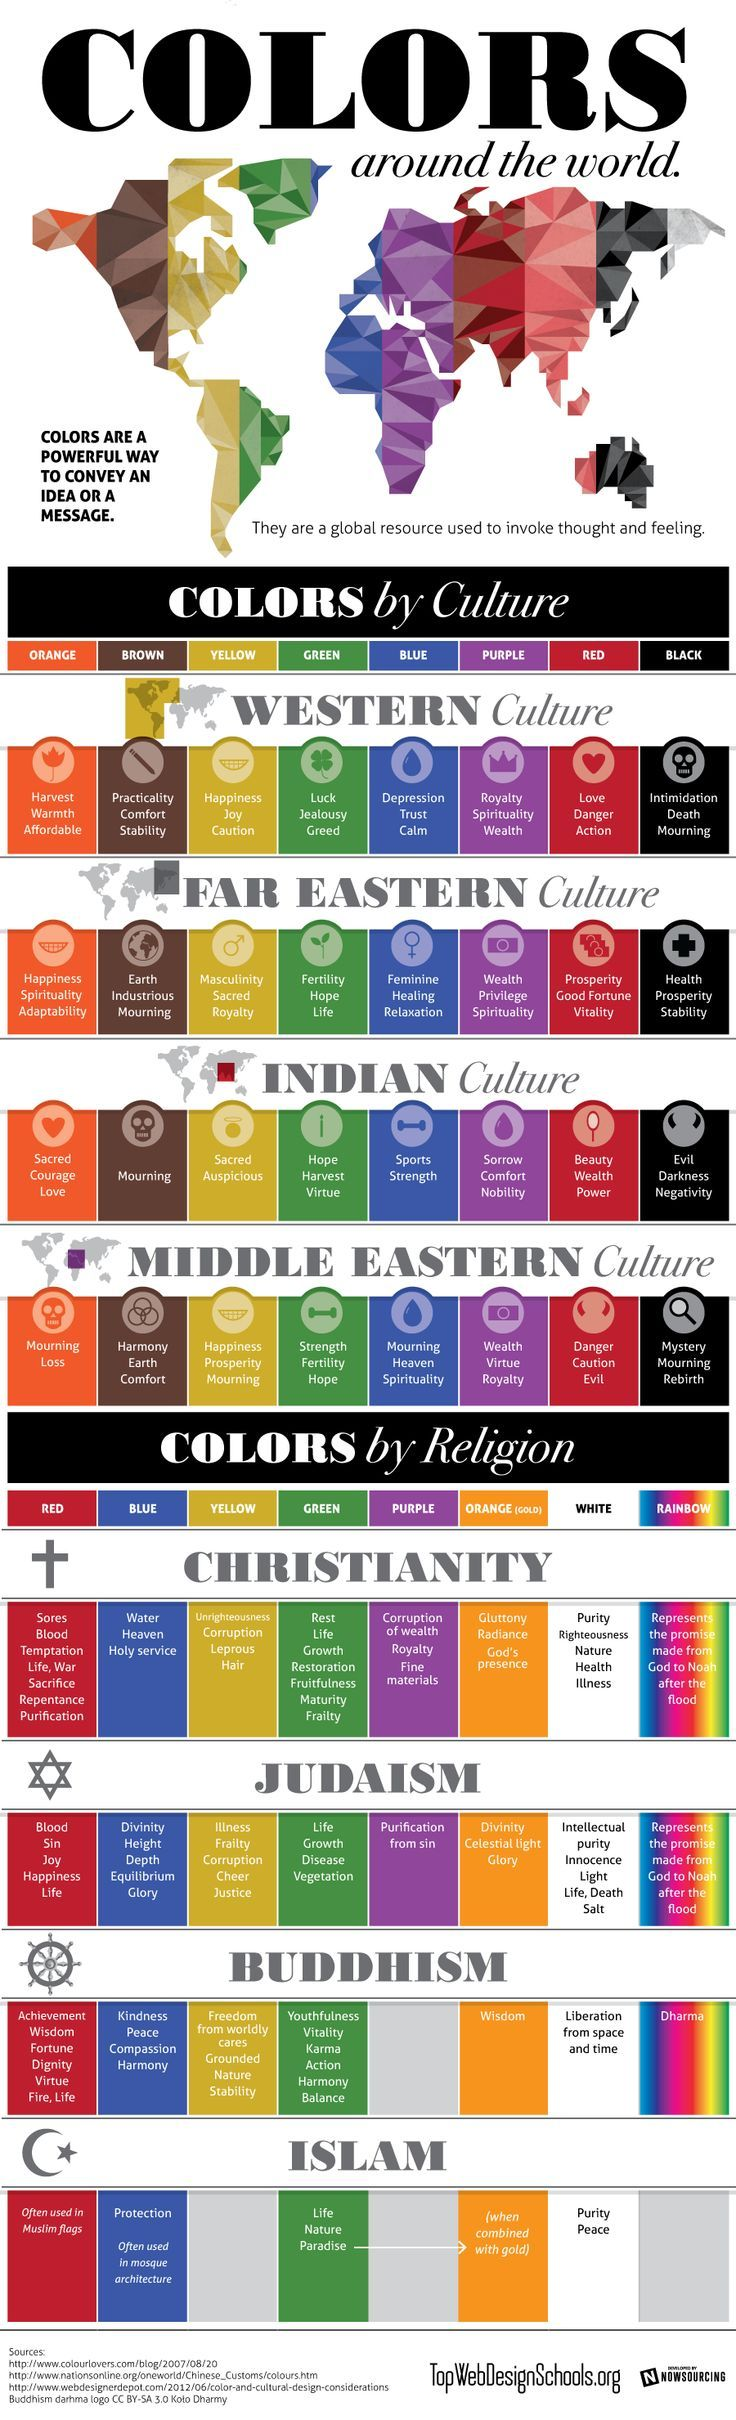 What Does Color Mean To You